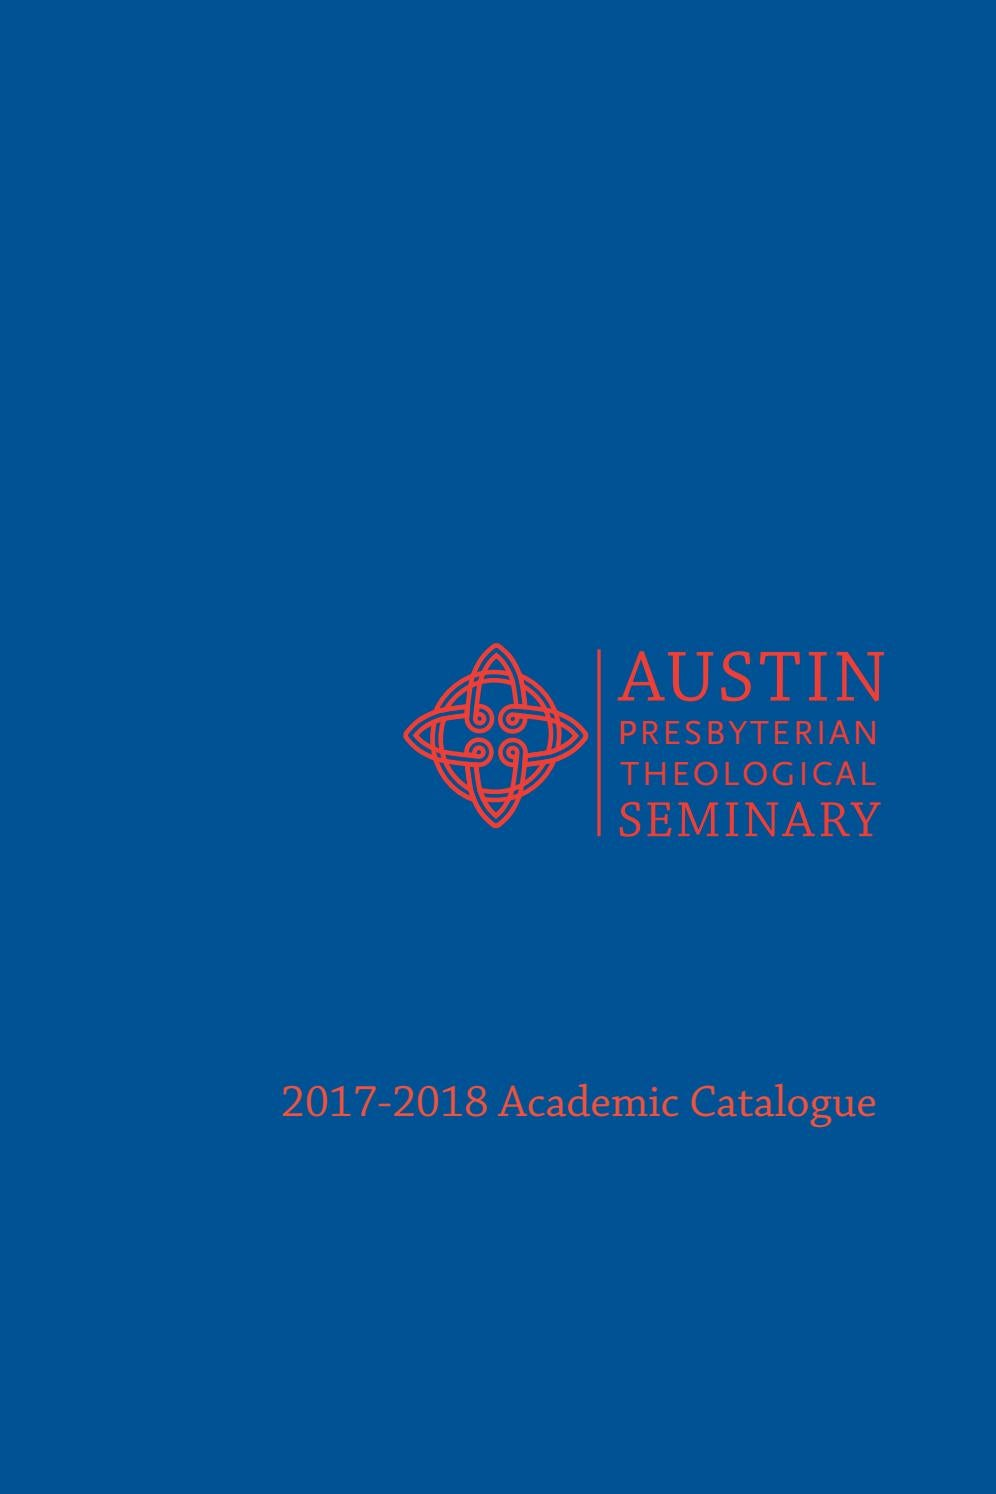 2017 18 catalogue by Austin Presbyterian Theological Seminary - issuu